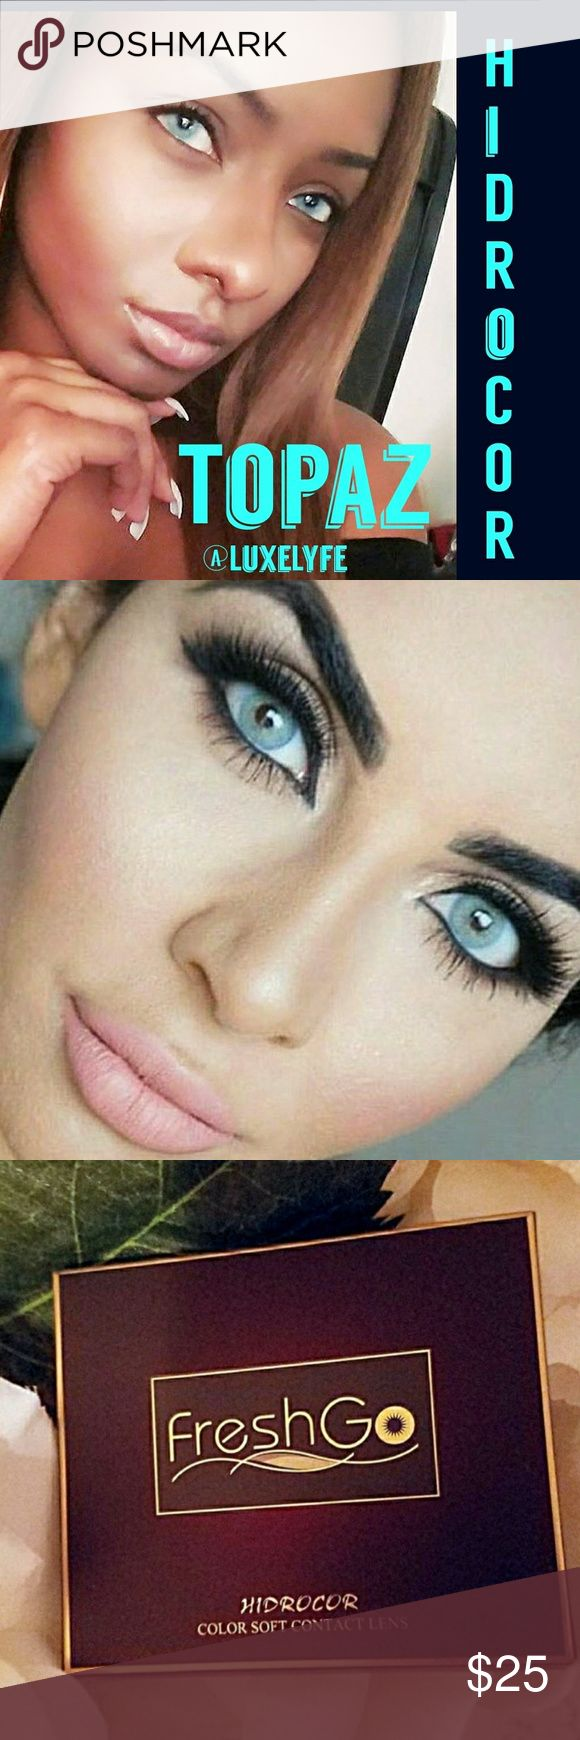 🎀Topaz COLOR CONTACT LENSES Gorgeous color. Total color change😍  ✔ Fast Shipping!📮 ✔ Brand New In Box 🎁 ✔ Lasts 12 months with proper care Makeup